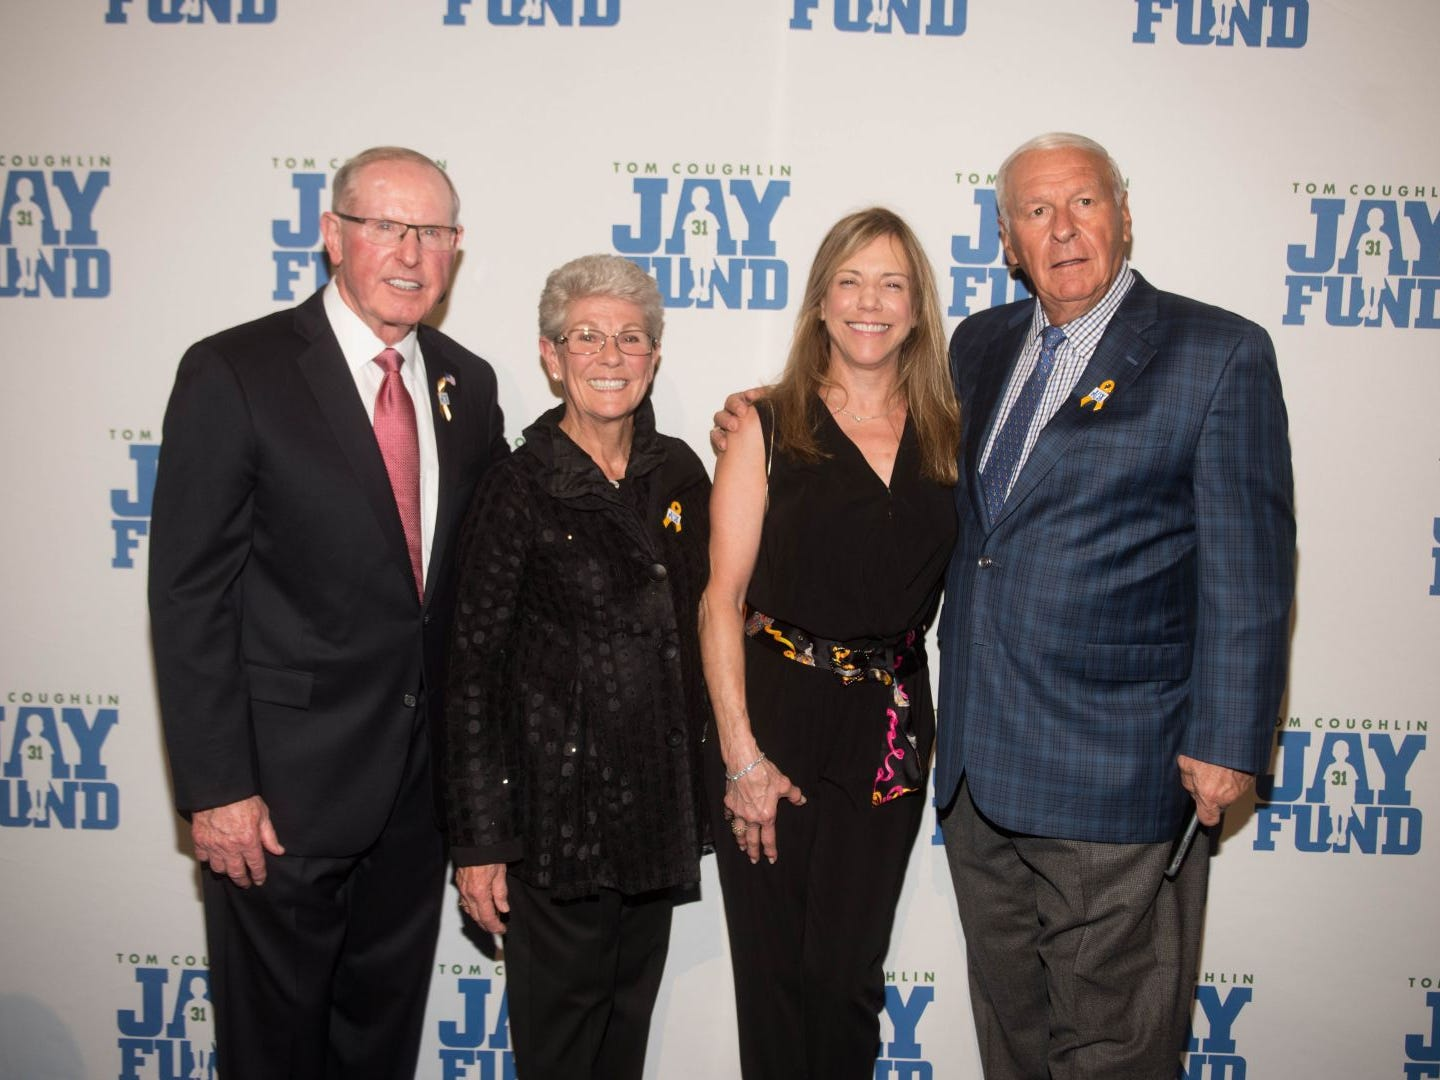 Tom Coughlin, Judy Coughlin, Jodi Mercein and Chuck Mercein. The 14th annual Jay Fund Champions for Children Gala was held at Cipriani 42nd Street. 09/21/2018